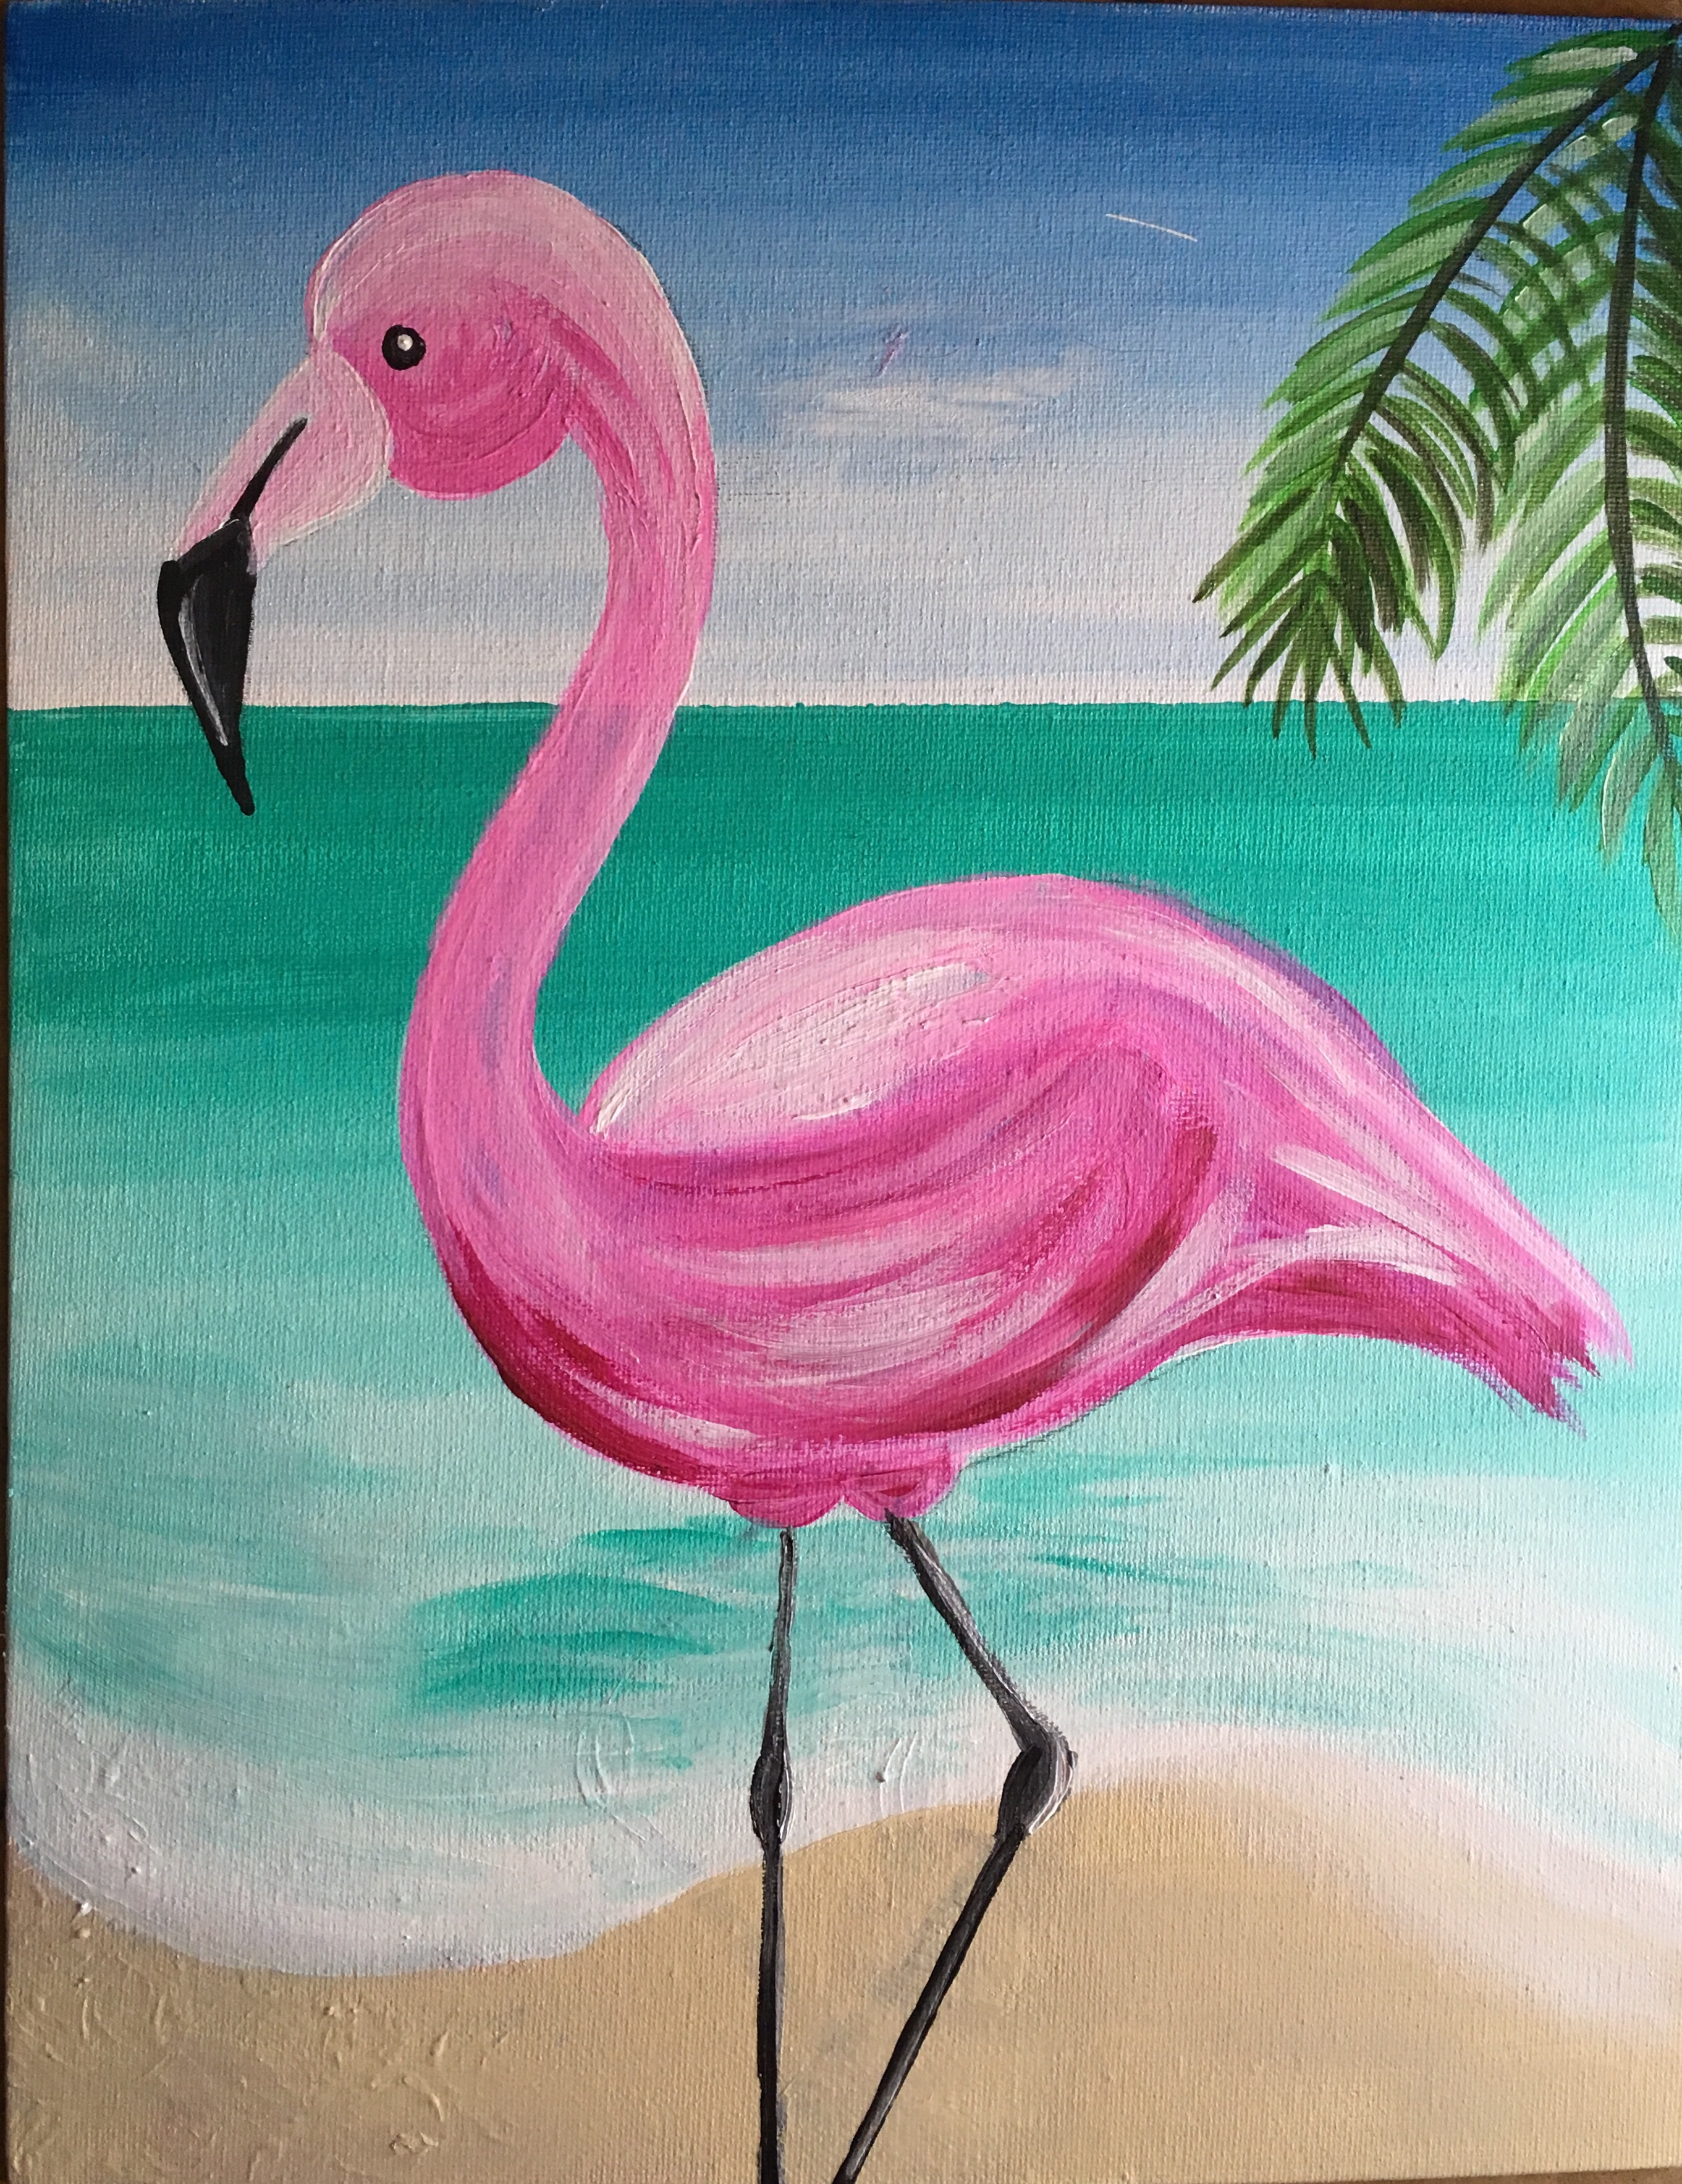 How To Paint A Flamingo - Step By Step Painting - photo#50